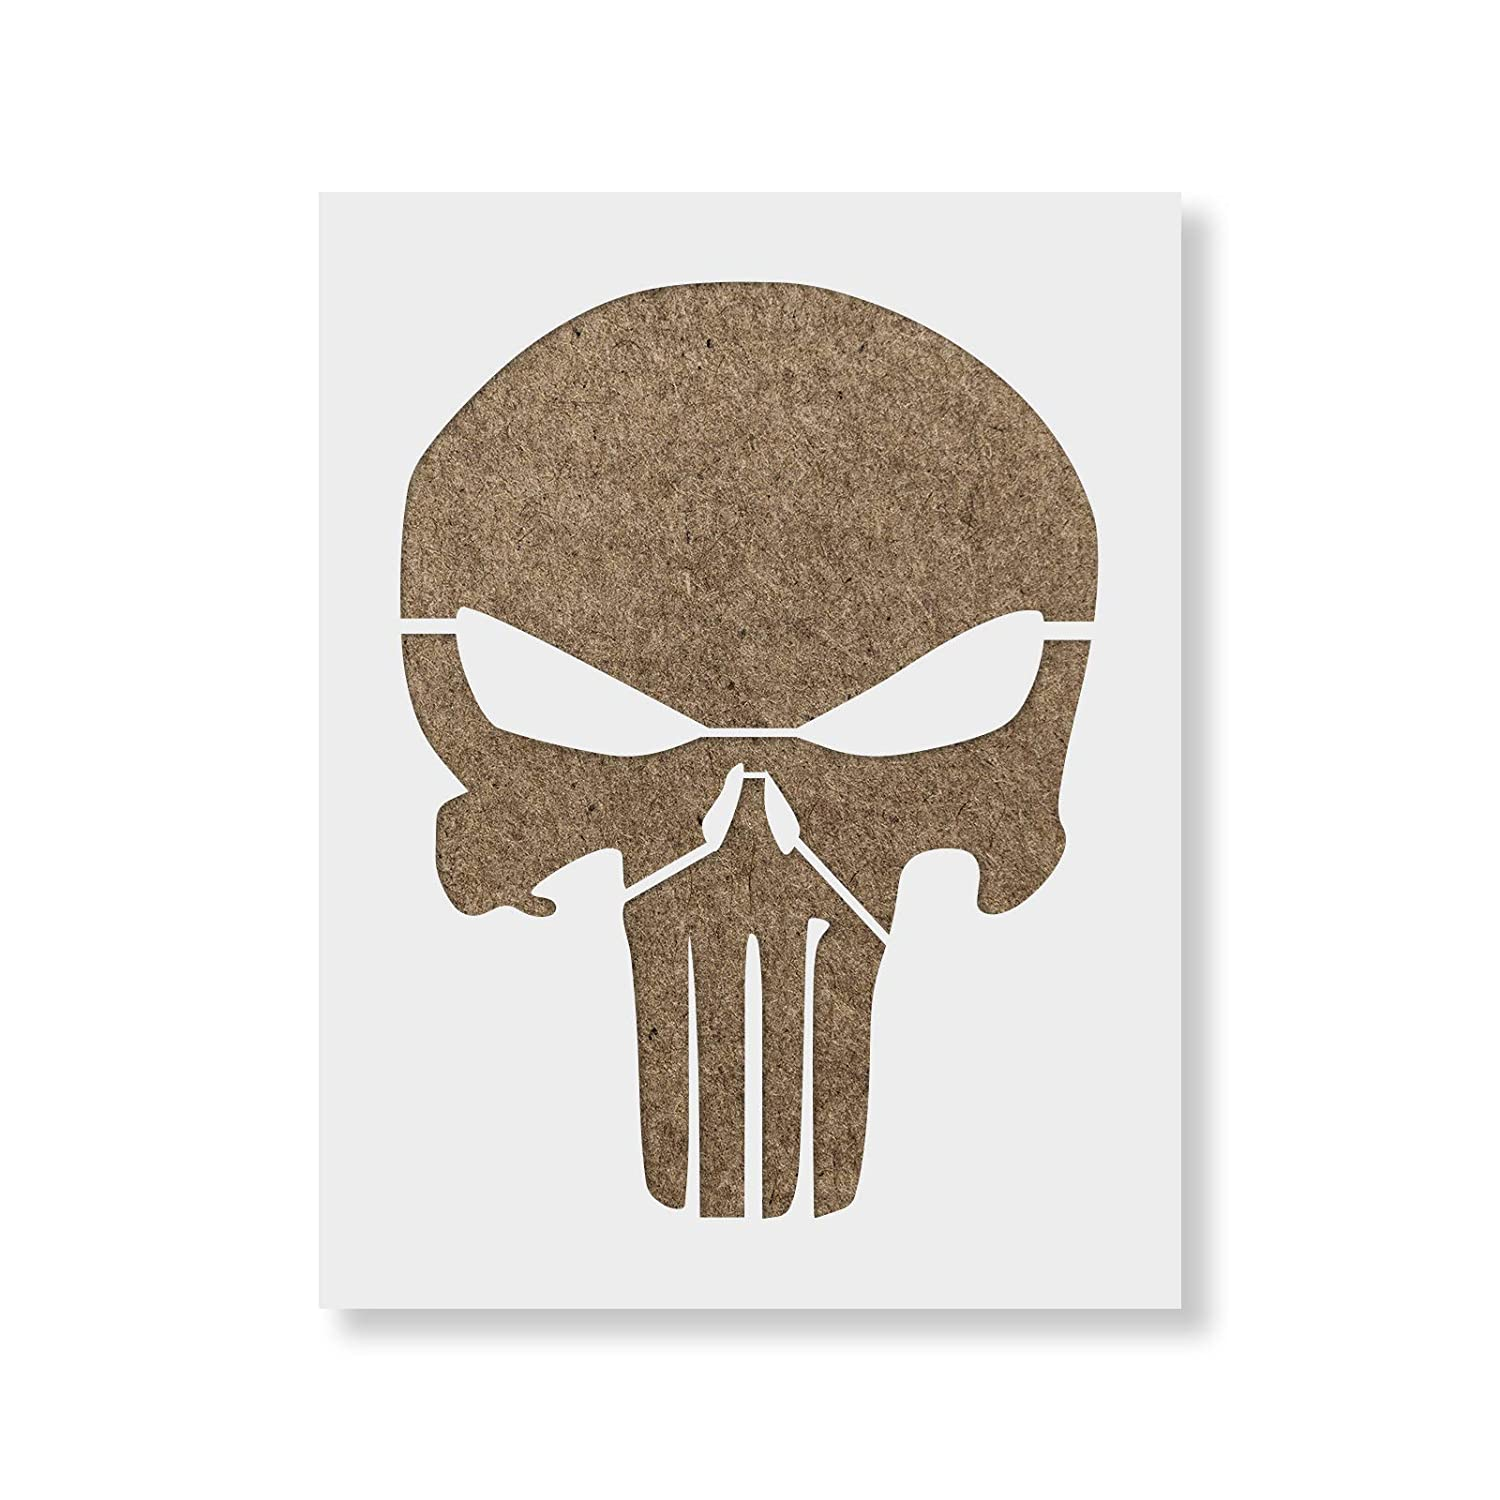 Punisher Skull Stencil Template - Reusable Stencil with Multiple Sizes Available Stencil Revolution 4336891120